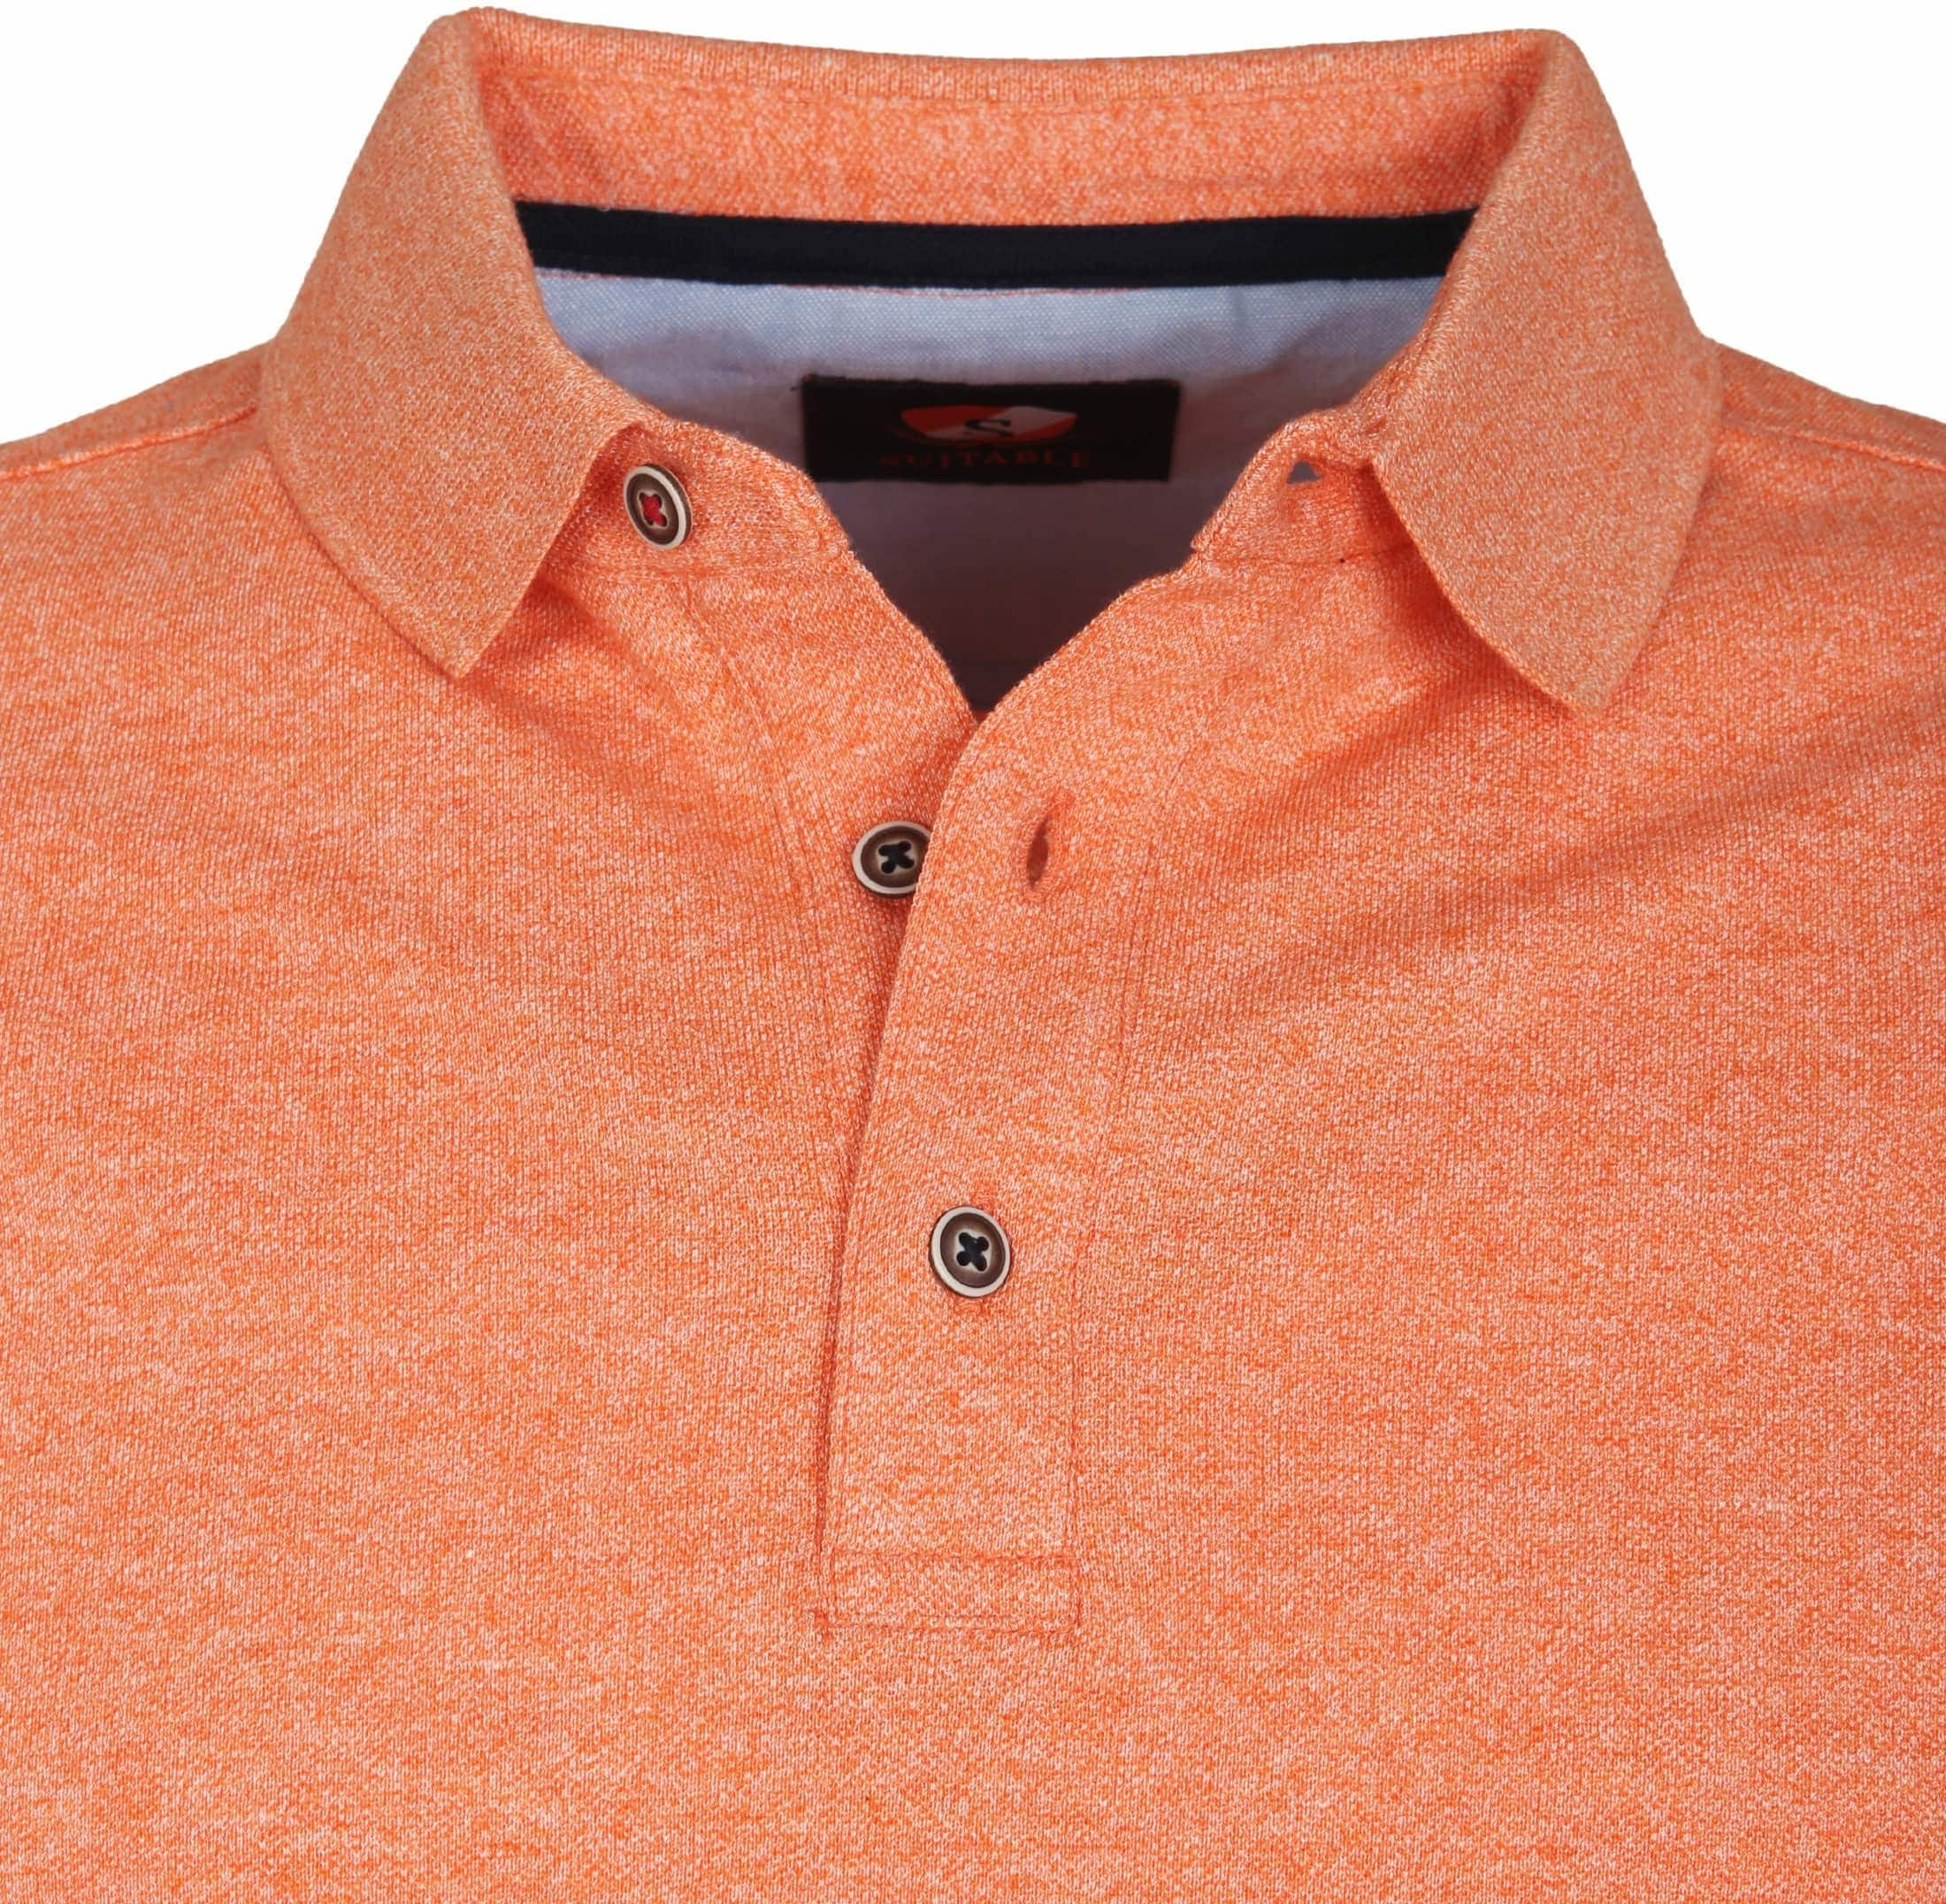 Suitable Poloshirt Jaspe Orange foto 1